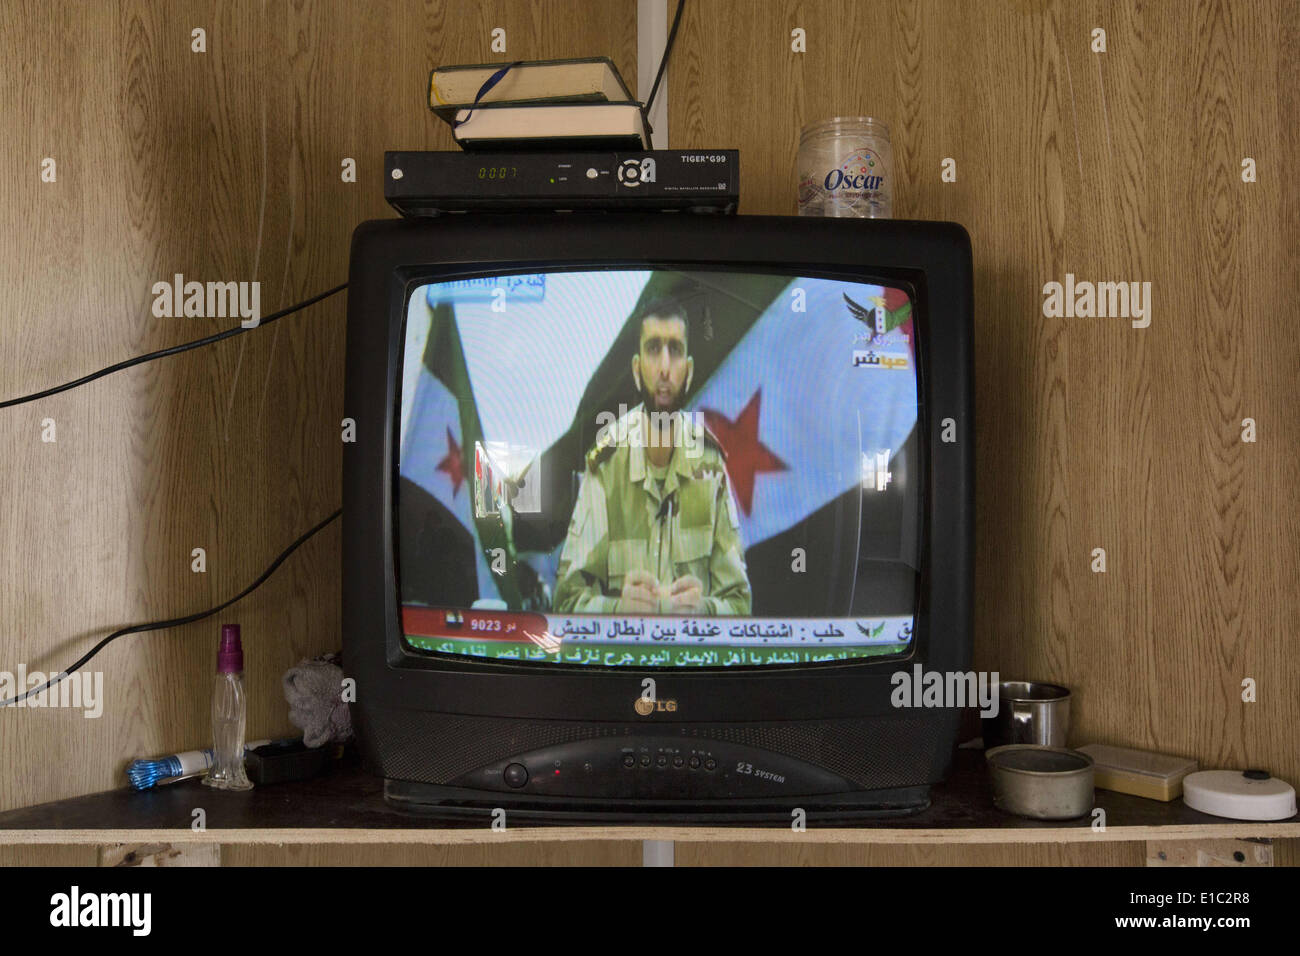 Al Mafraq, JORDAN. 8th Feb, 2014. For those fortunate enough to have satellite capabilities, Free Syrian Army television - Stock Image